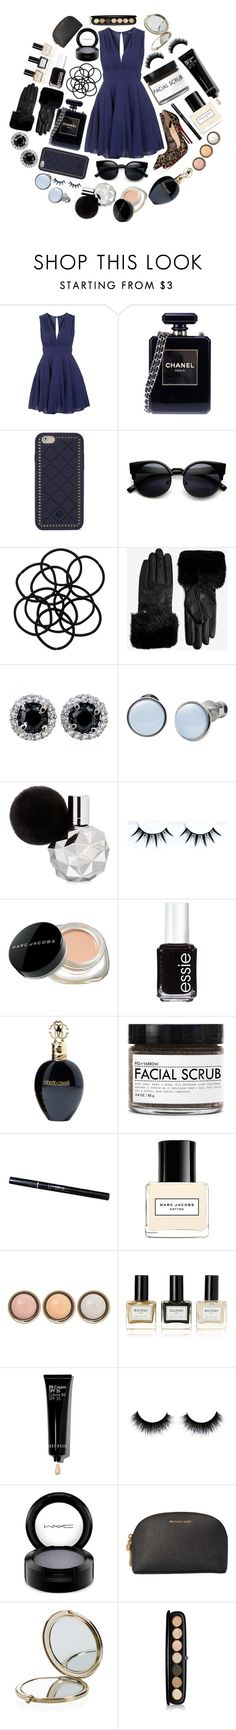 """""""Untitled #325"""" by lorraine-soutar ❤ liked on Polyvore featuring TFNC, Christian Louboutin, Chanel, Tory Burch, Monki, Ted Baker, Skagen, Marc Jacobs, Essie and Roberto Cavalli"""